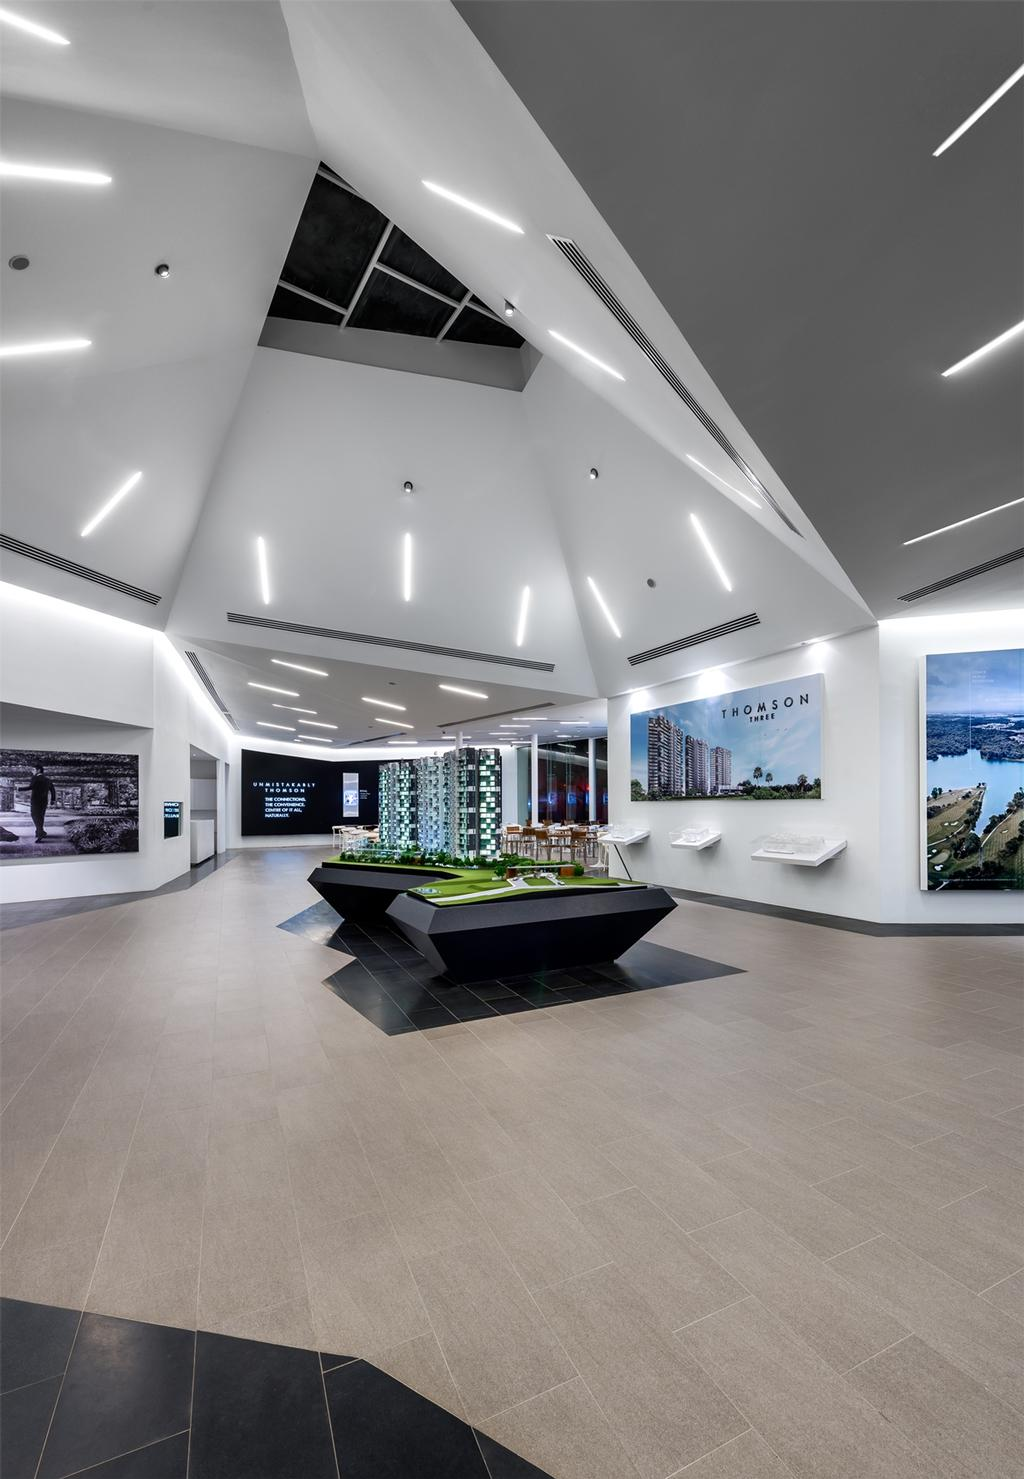 UOL Frame, Commercial, Architect, Ministry of Design, Modern, Recessed Lights, Recessed Lighting, Sloped Ceiling, Slanted Ceiling, High Ceiling, Wooden Flooring, Display Tables, Wall Picture, Wall Shelf